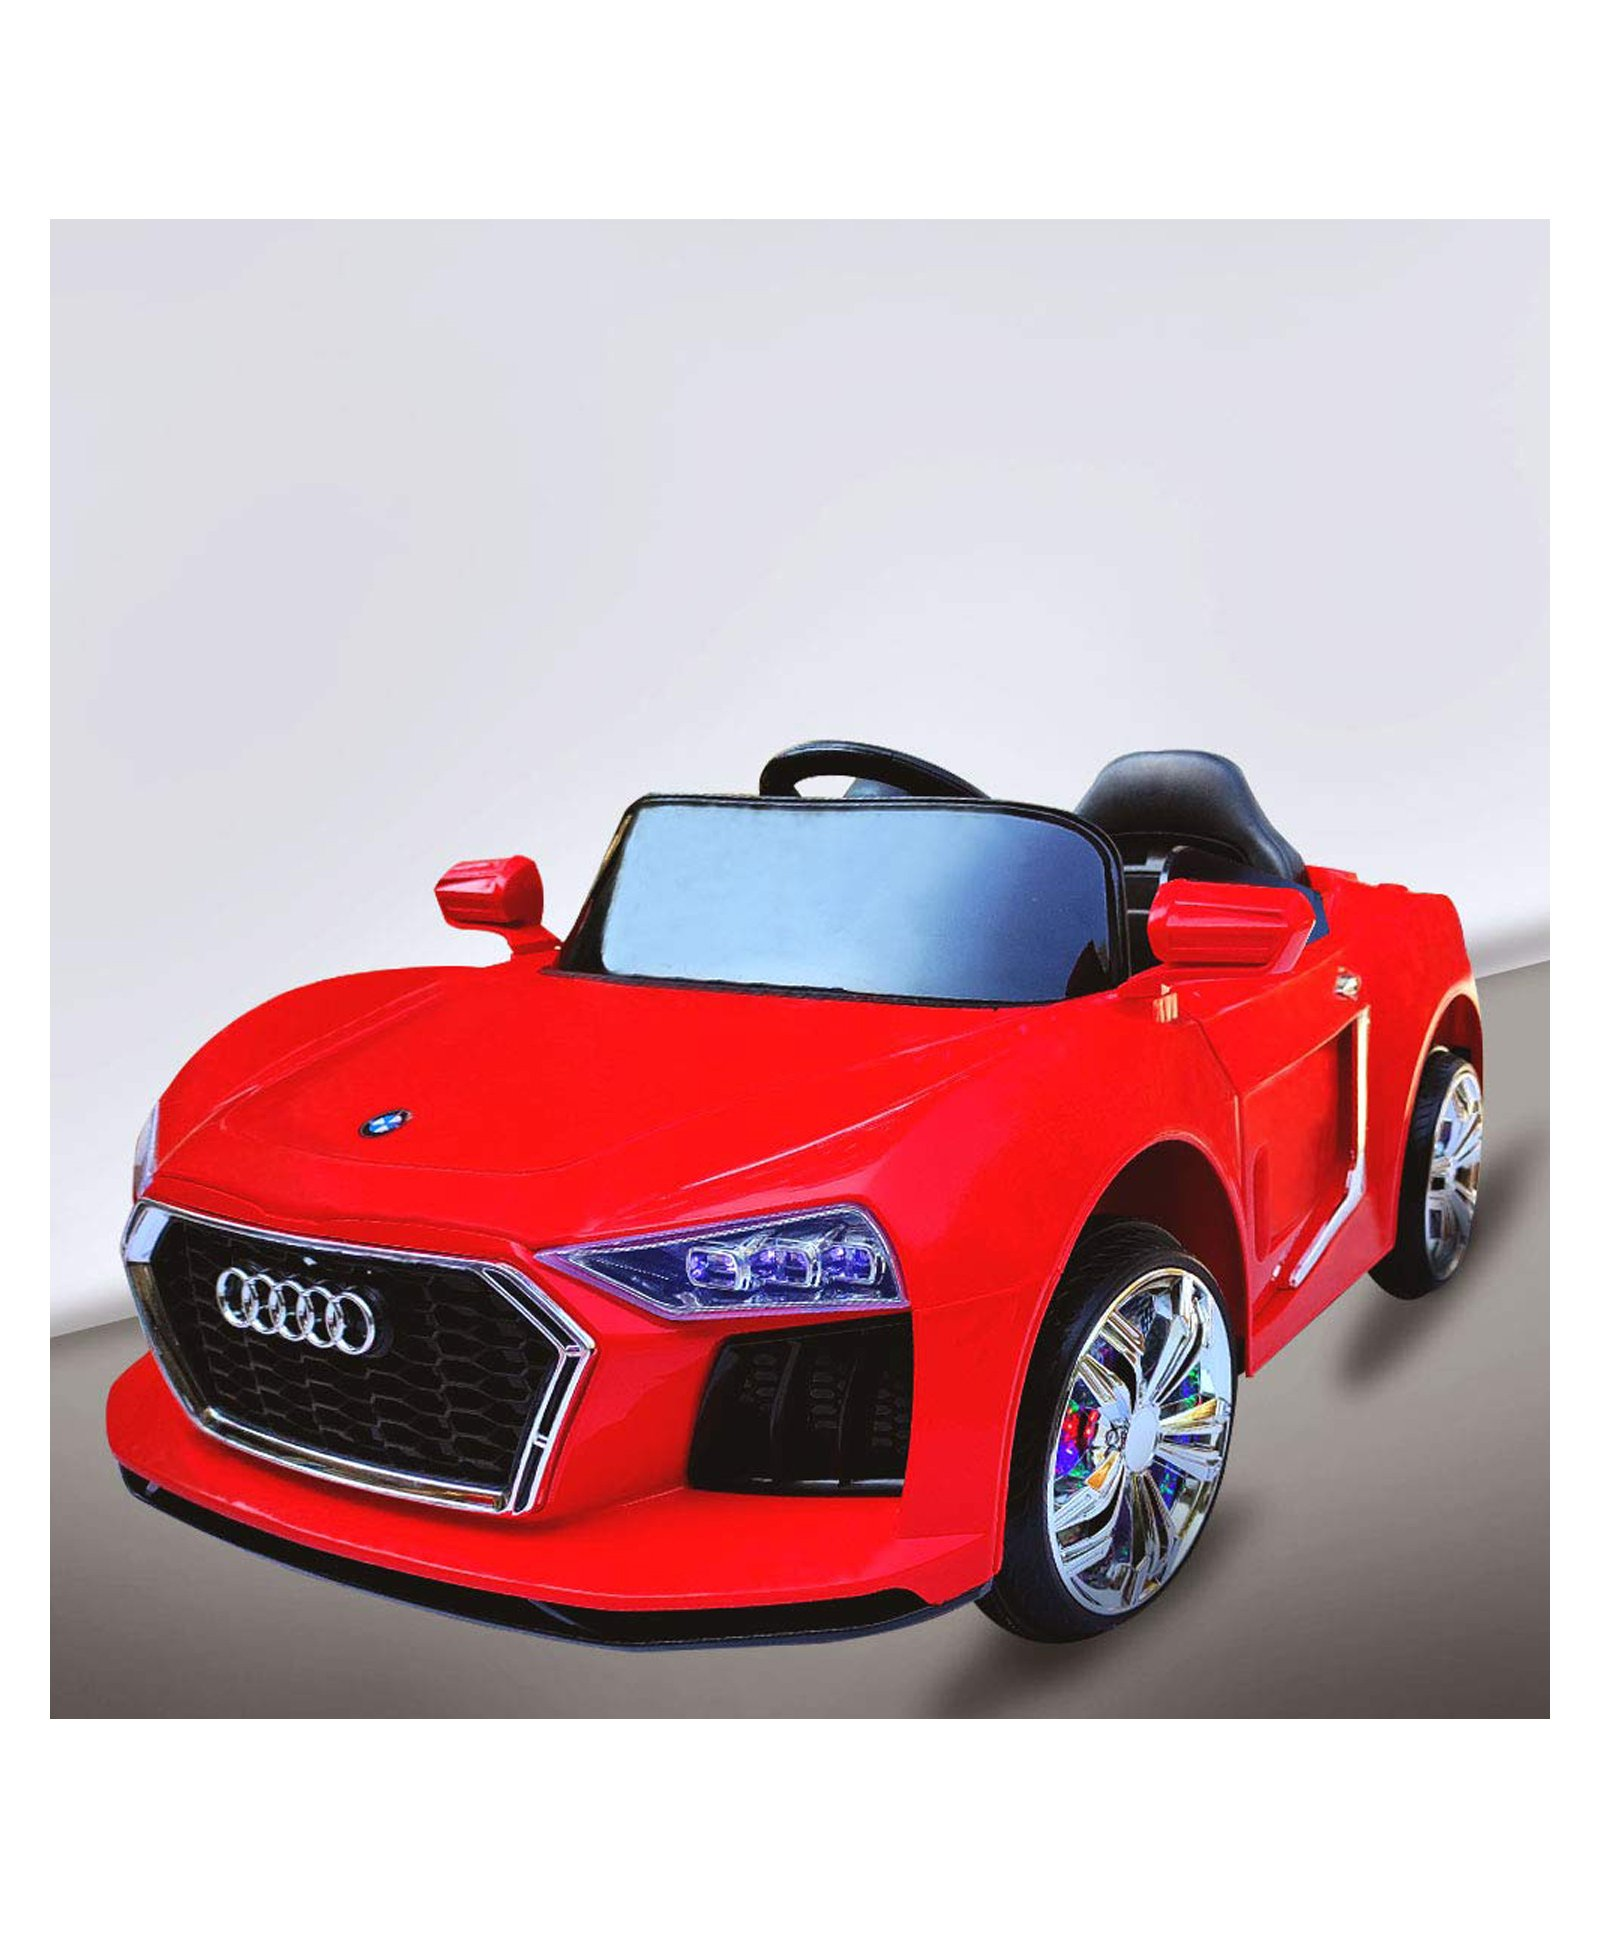 Staranddaisy Rechargeable Battery Operated Ride On Car Red Online In India Buy At Best Price From Firstcry Com 8590743